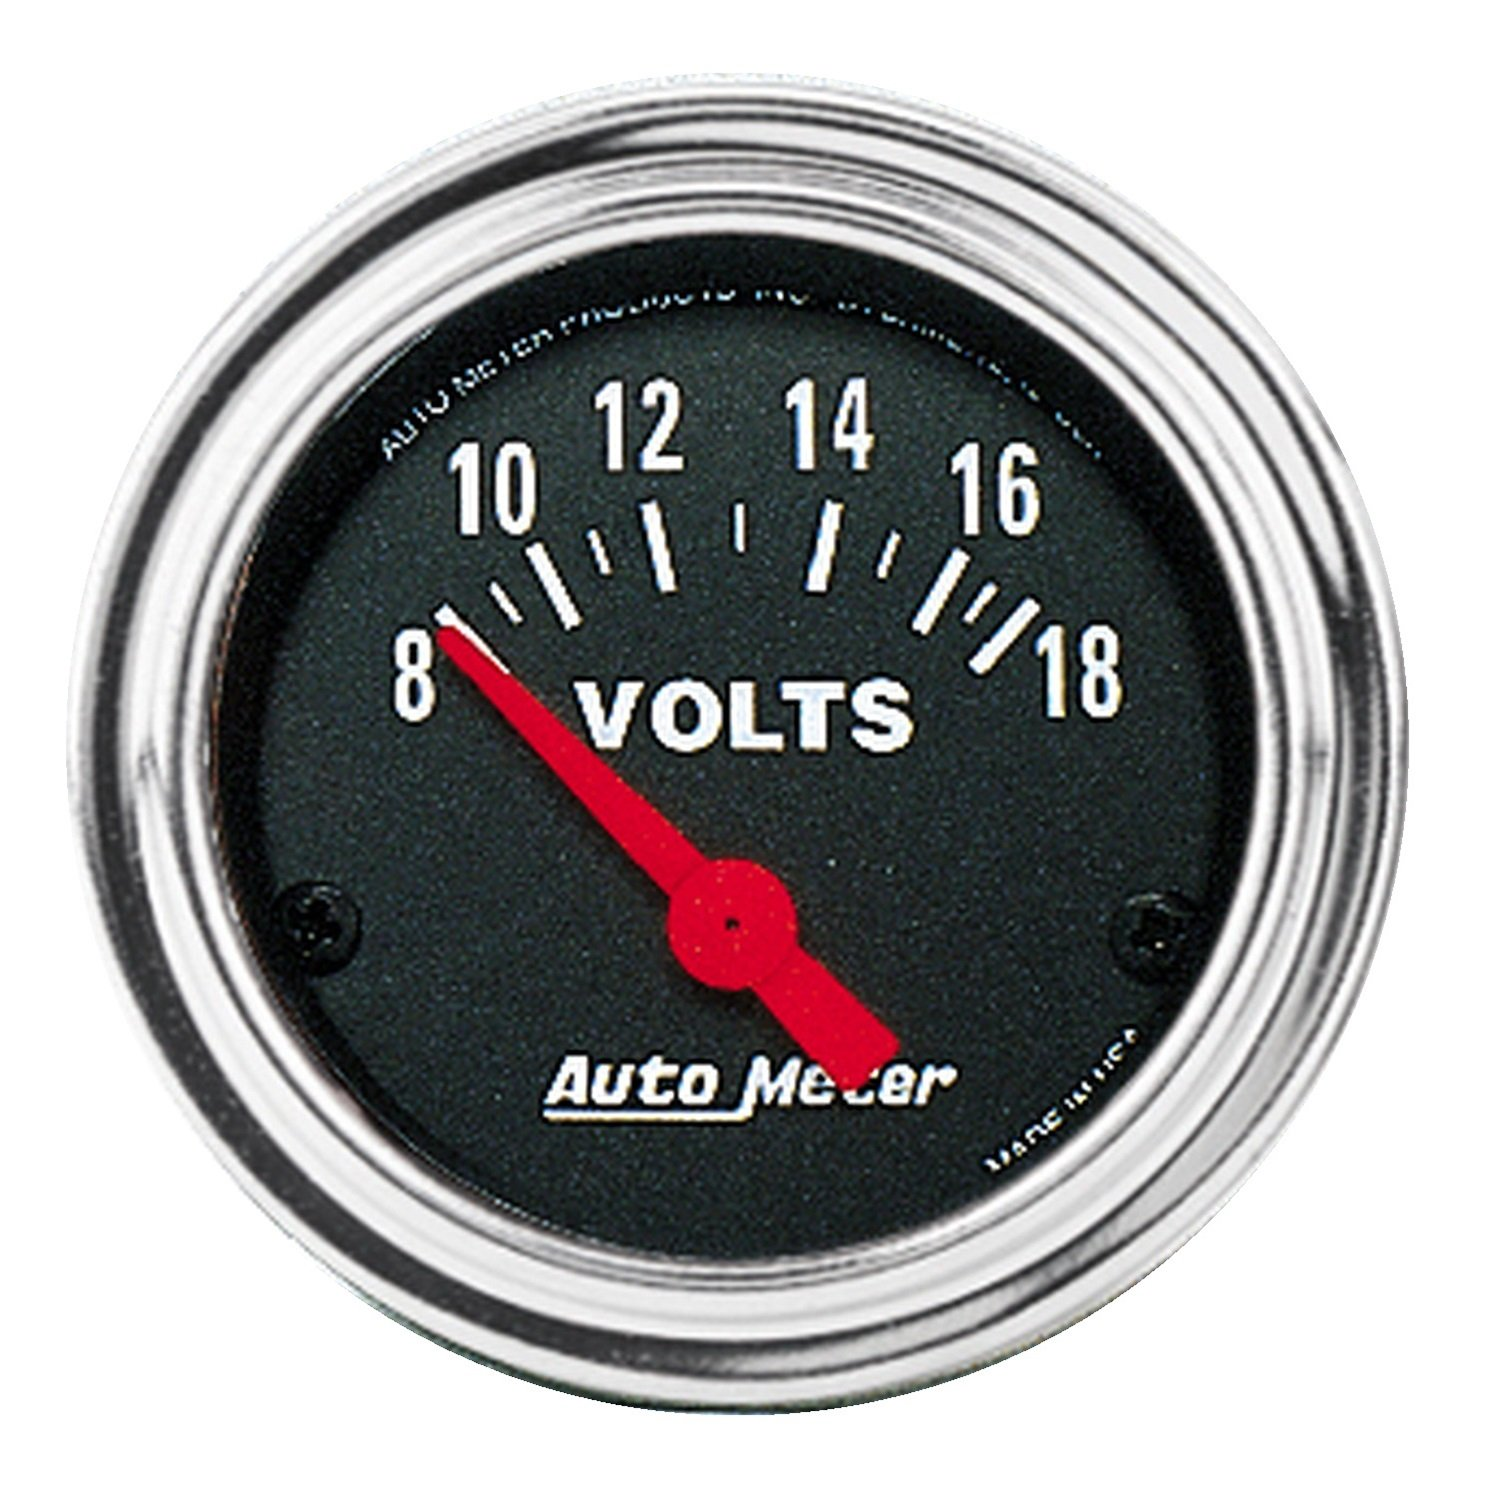 Auto Meter 2592 Traditional Chrome 2-1/16' 8-18 Volt Short Sweep Electric Voltmeter